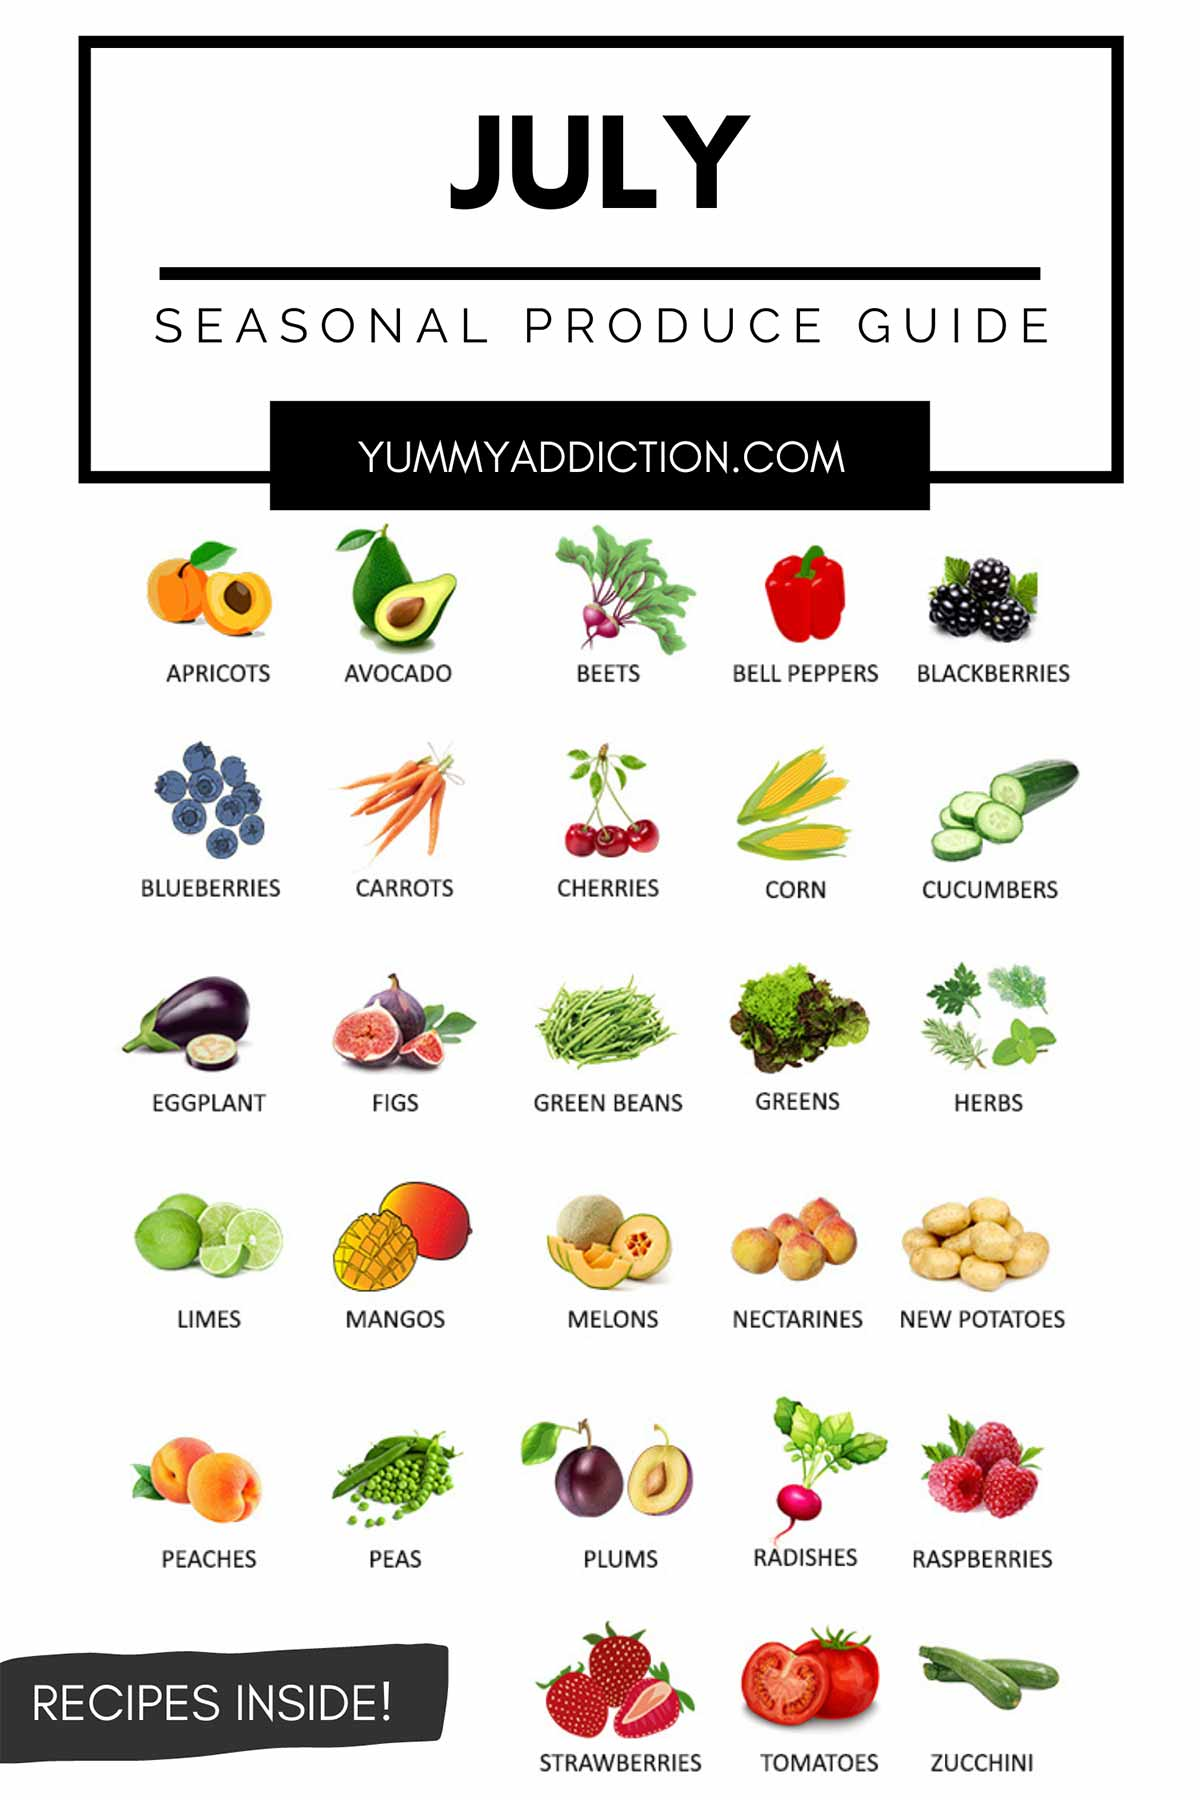 Vegetables and fruits in season in July